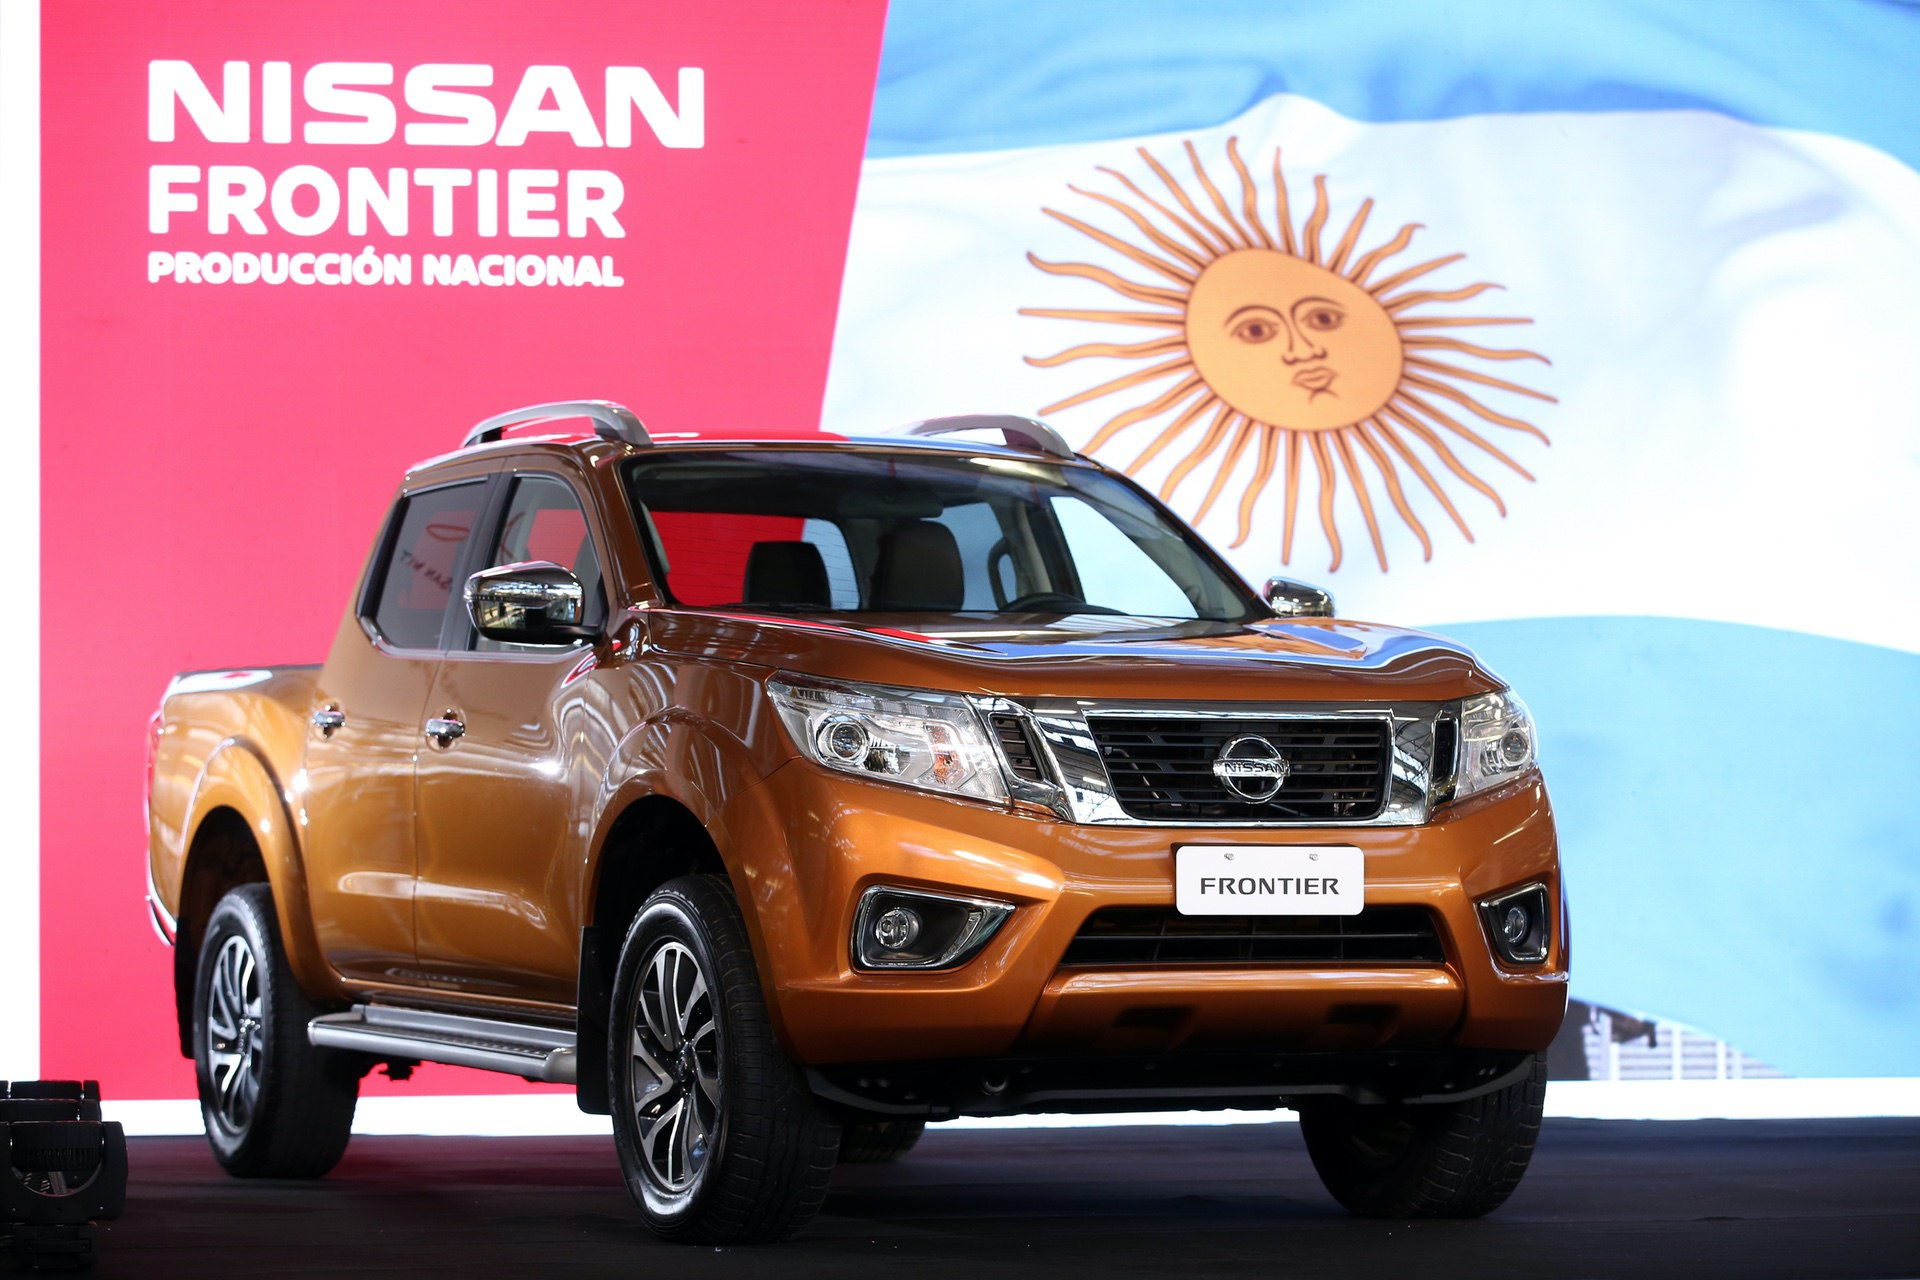 Nissan begins production of Nissan Frontier in Cordoba, Argentin